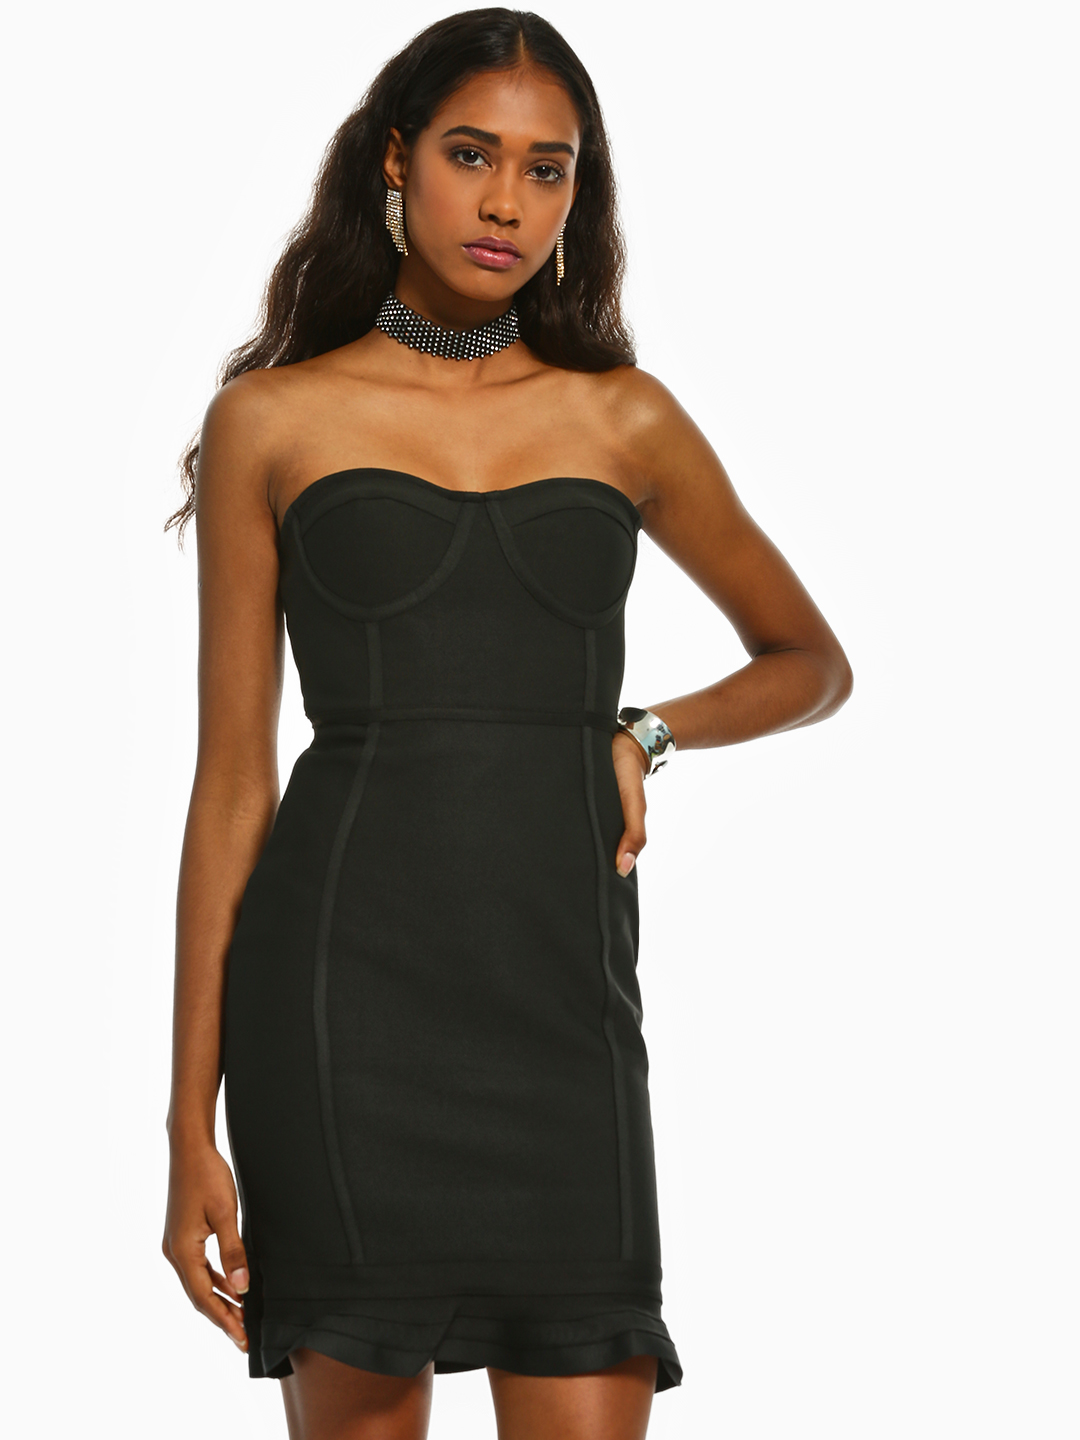 Iris Black Bustier Bandeau Bodycon Dress 1